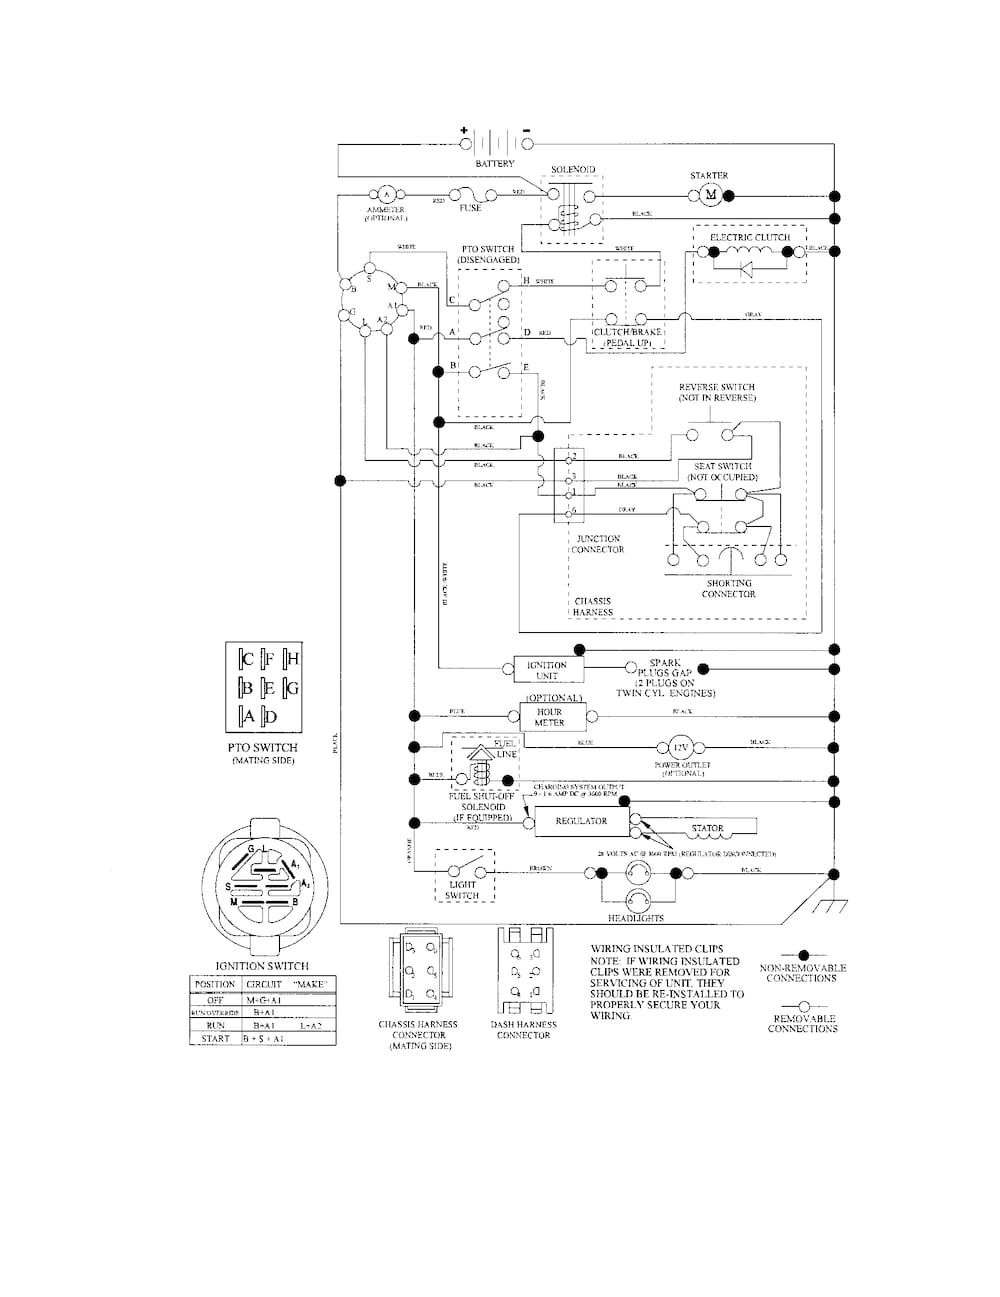 Power King Tractor Wiring Diagram Detailed Schematics Diagram Ford 3000 Wiring  Schematic Ford 3600 Tractor Wiring Schematic